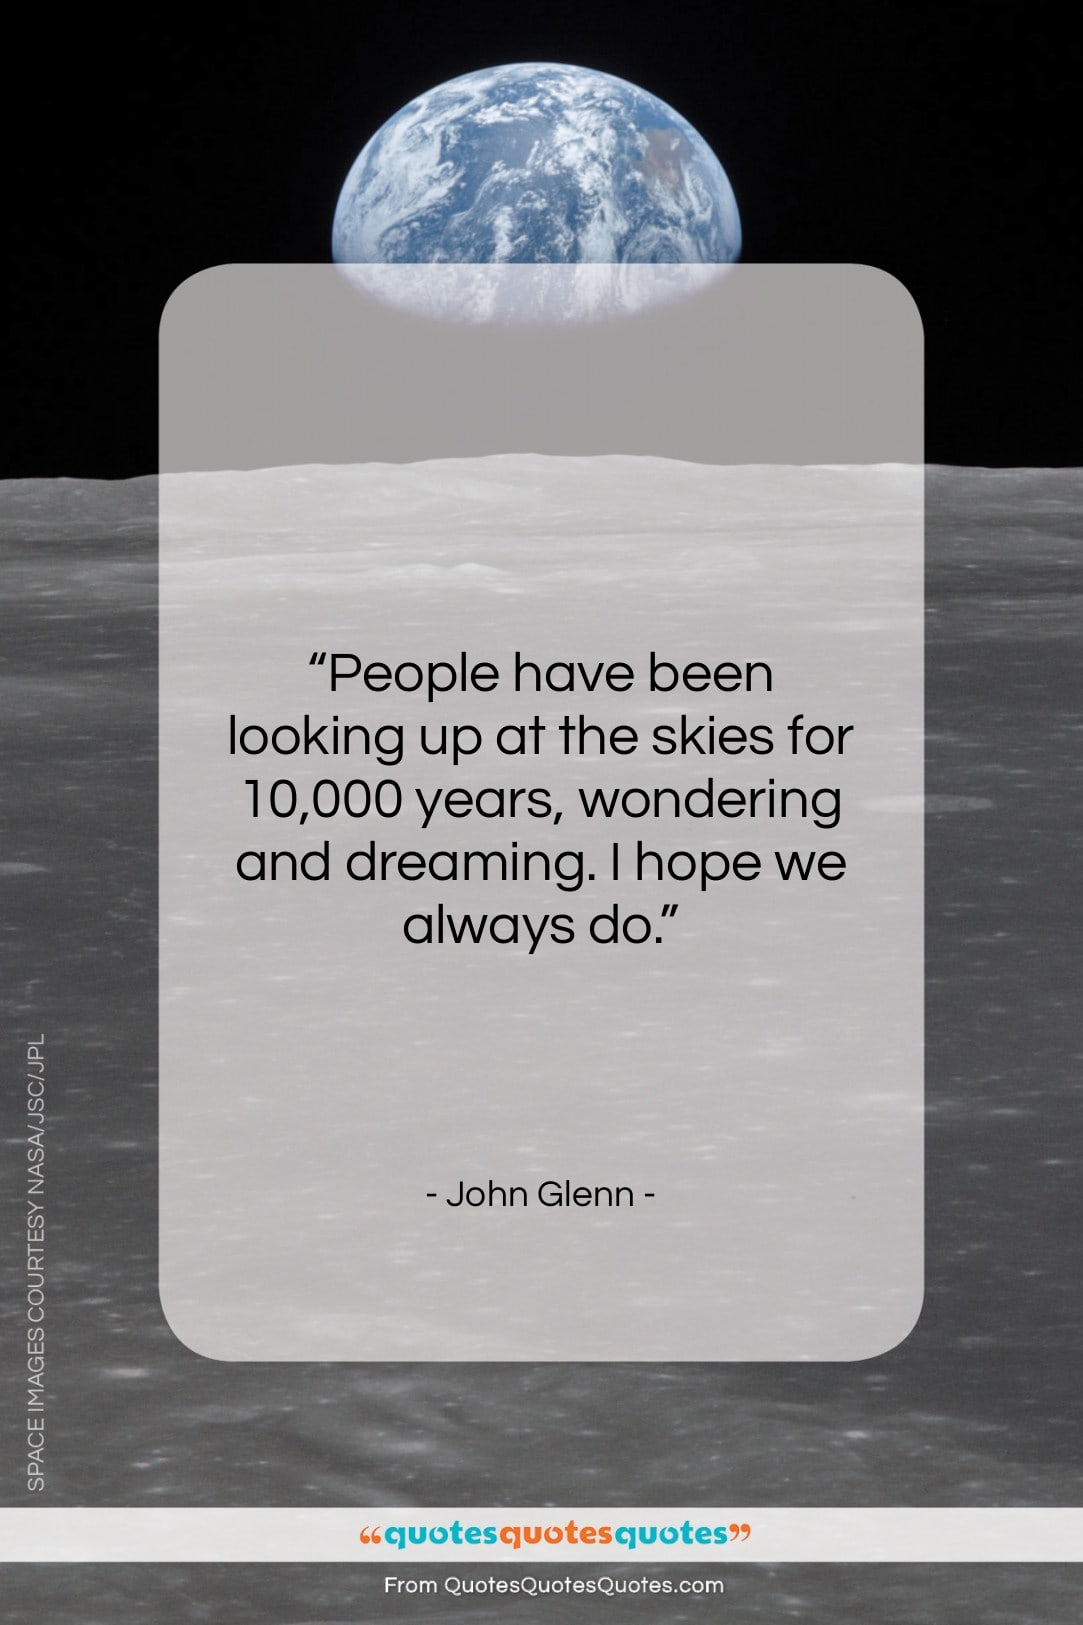 Get The Whole John Glenn Quote People Have Been Looking Up At The